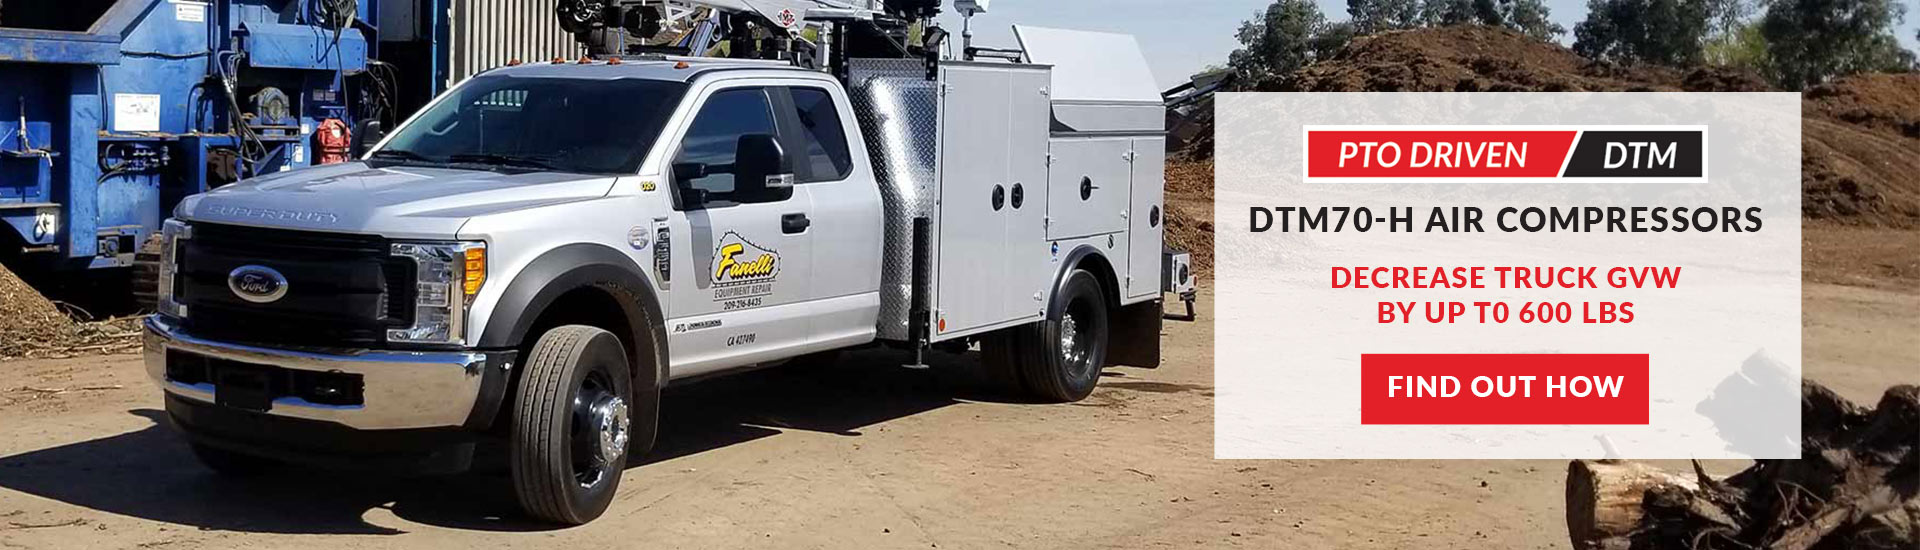 Southern Tire Mart's Quarry & Mining Manager Tests VMAC's DTM70 Air Compressor